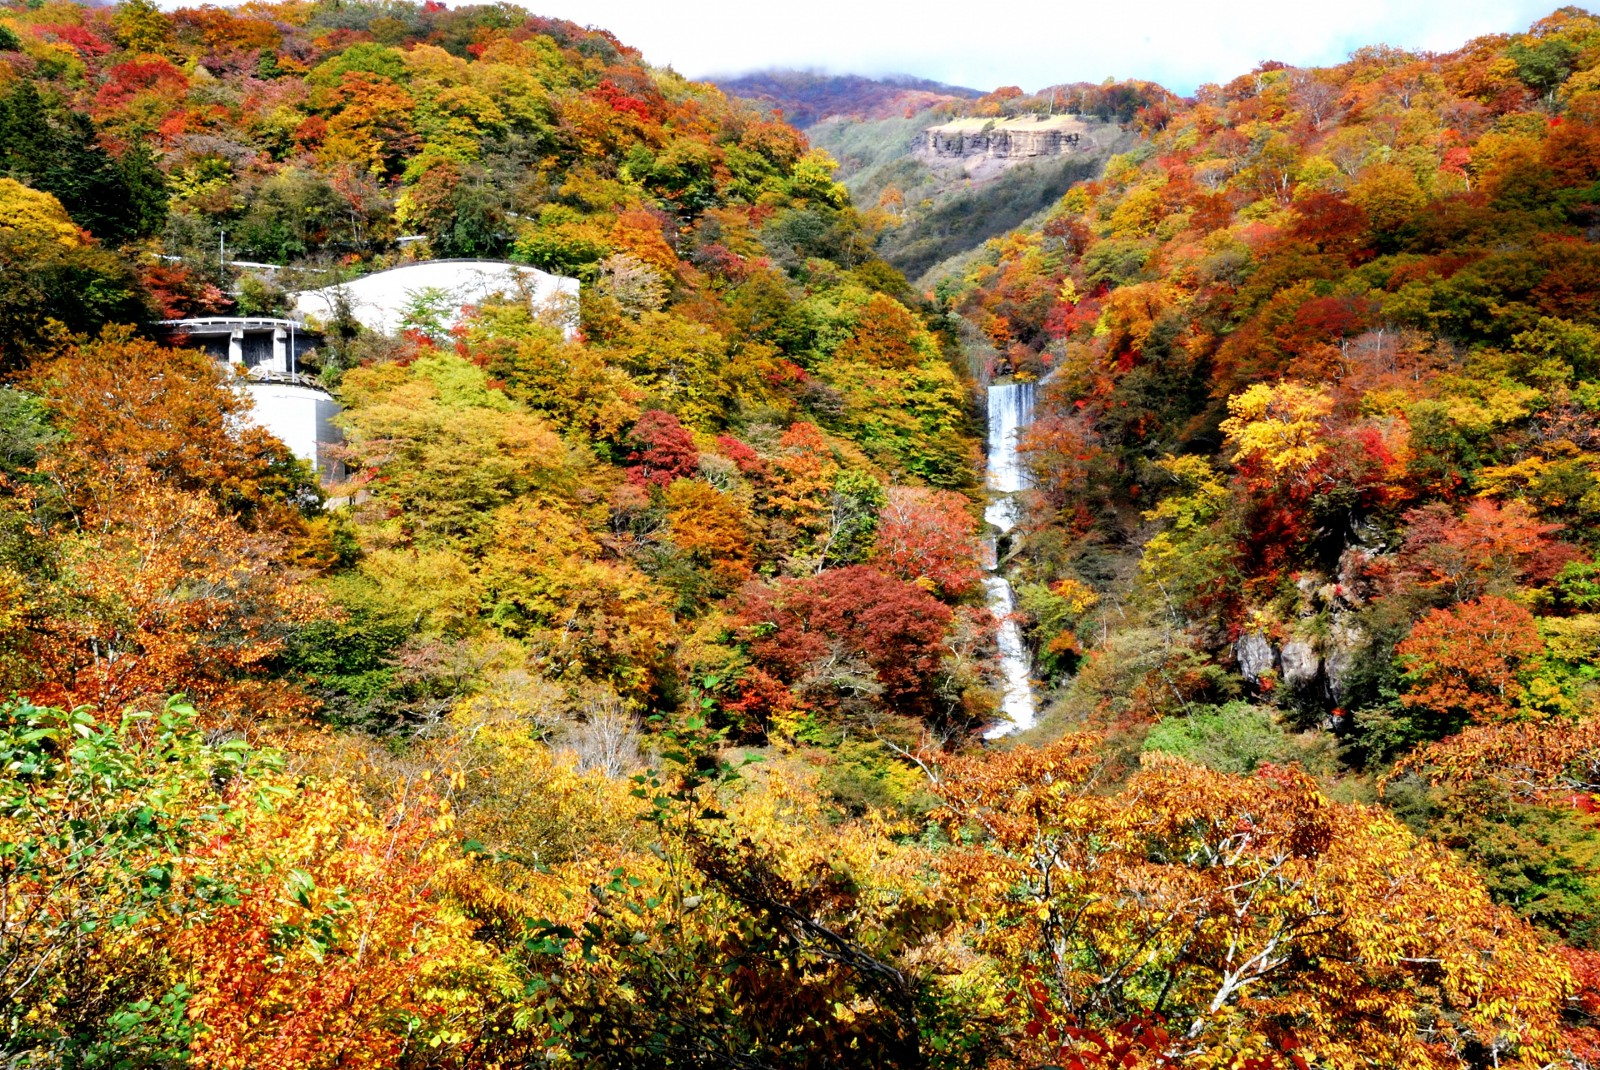 Kegon Fall with colourful autumn leaves in Nikko, Tochigi